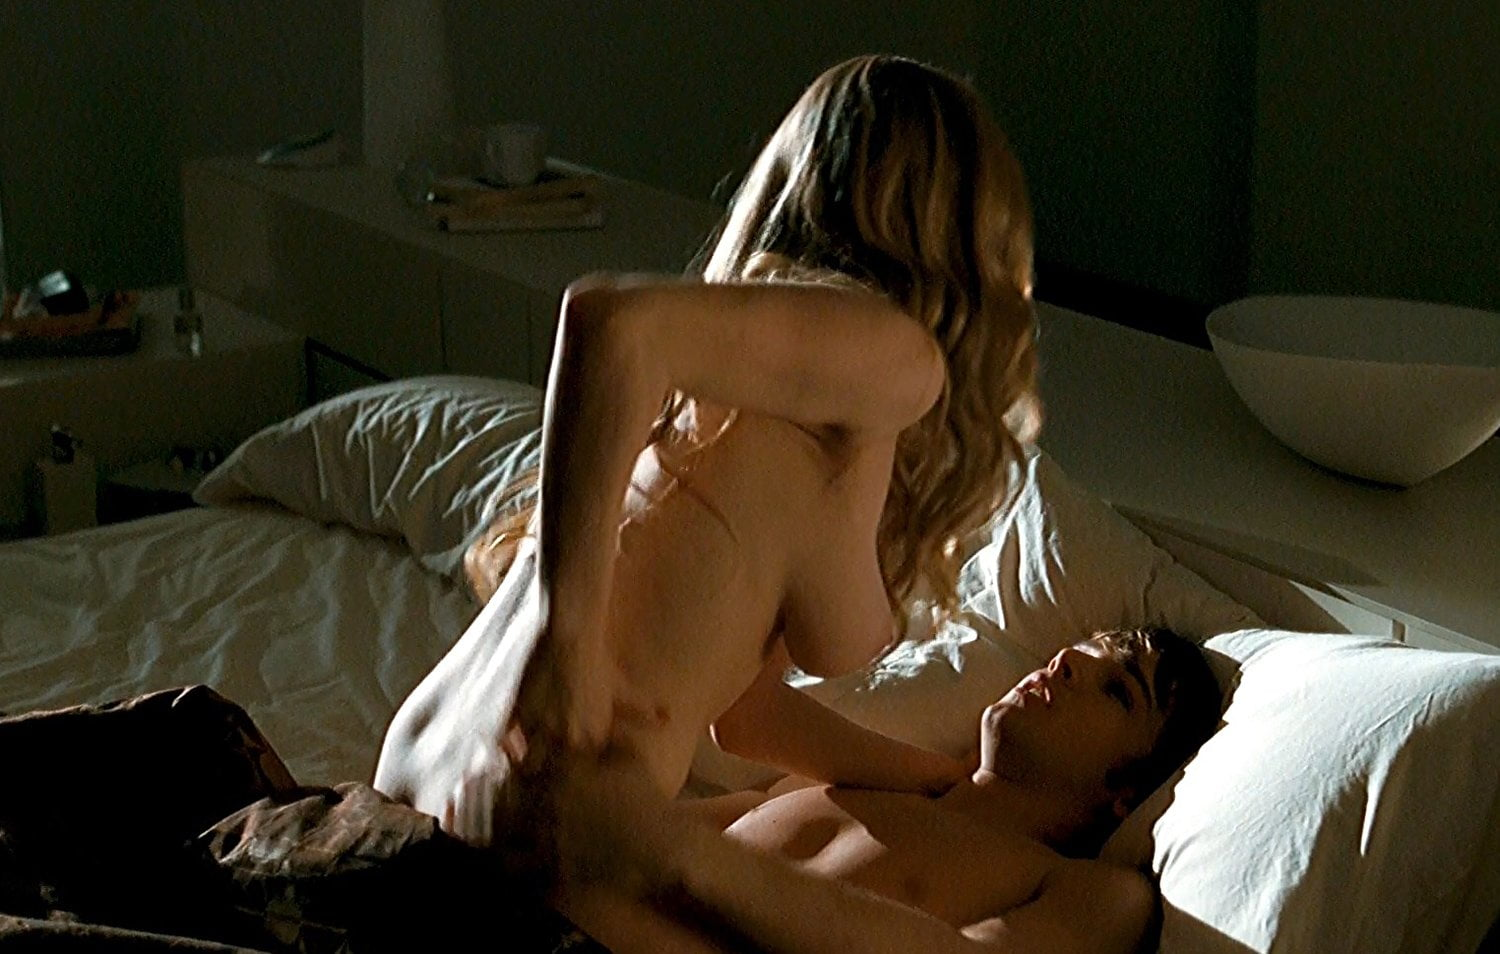 100 Photos of Amanda Seyfried Video Sex